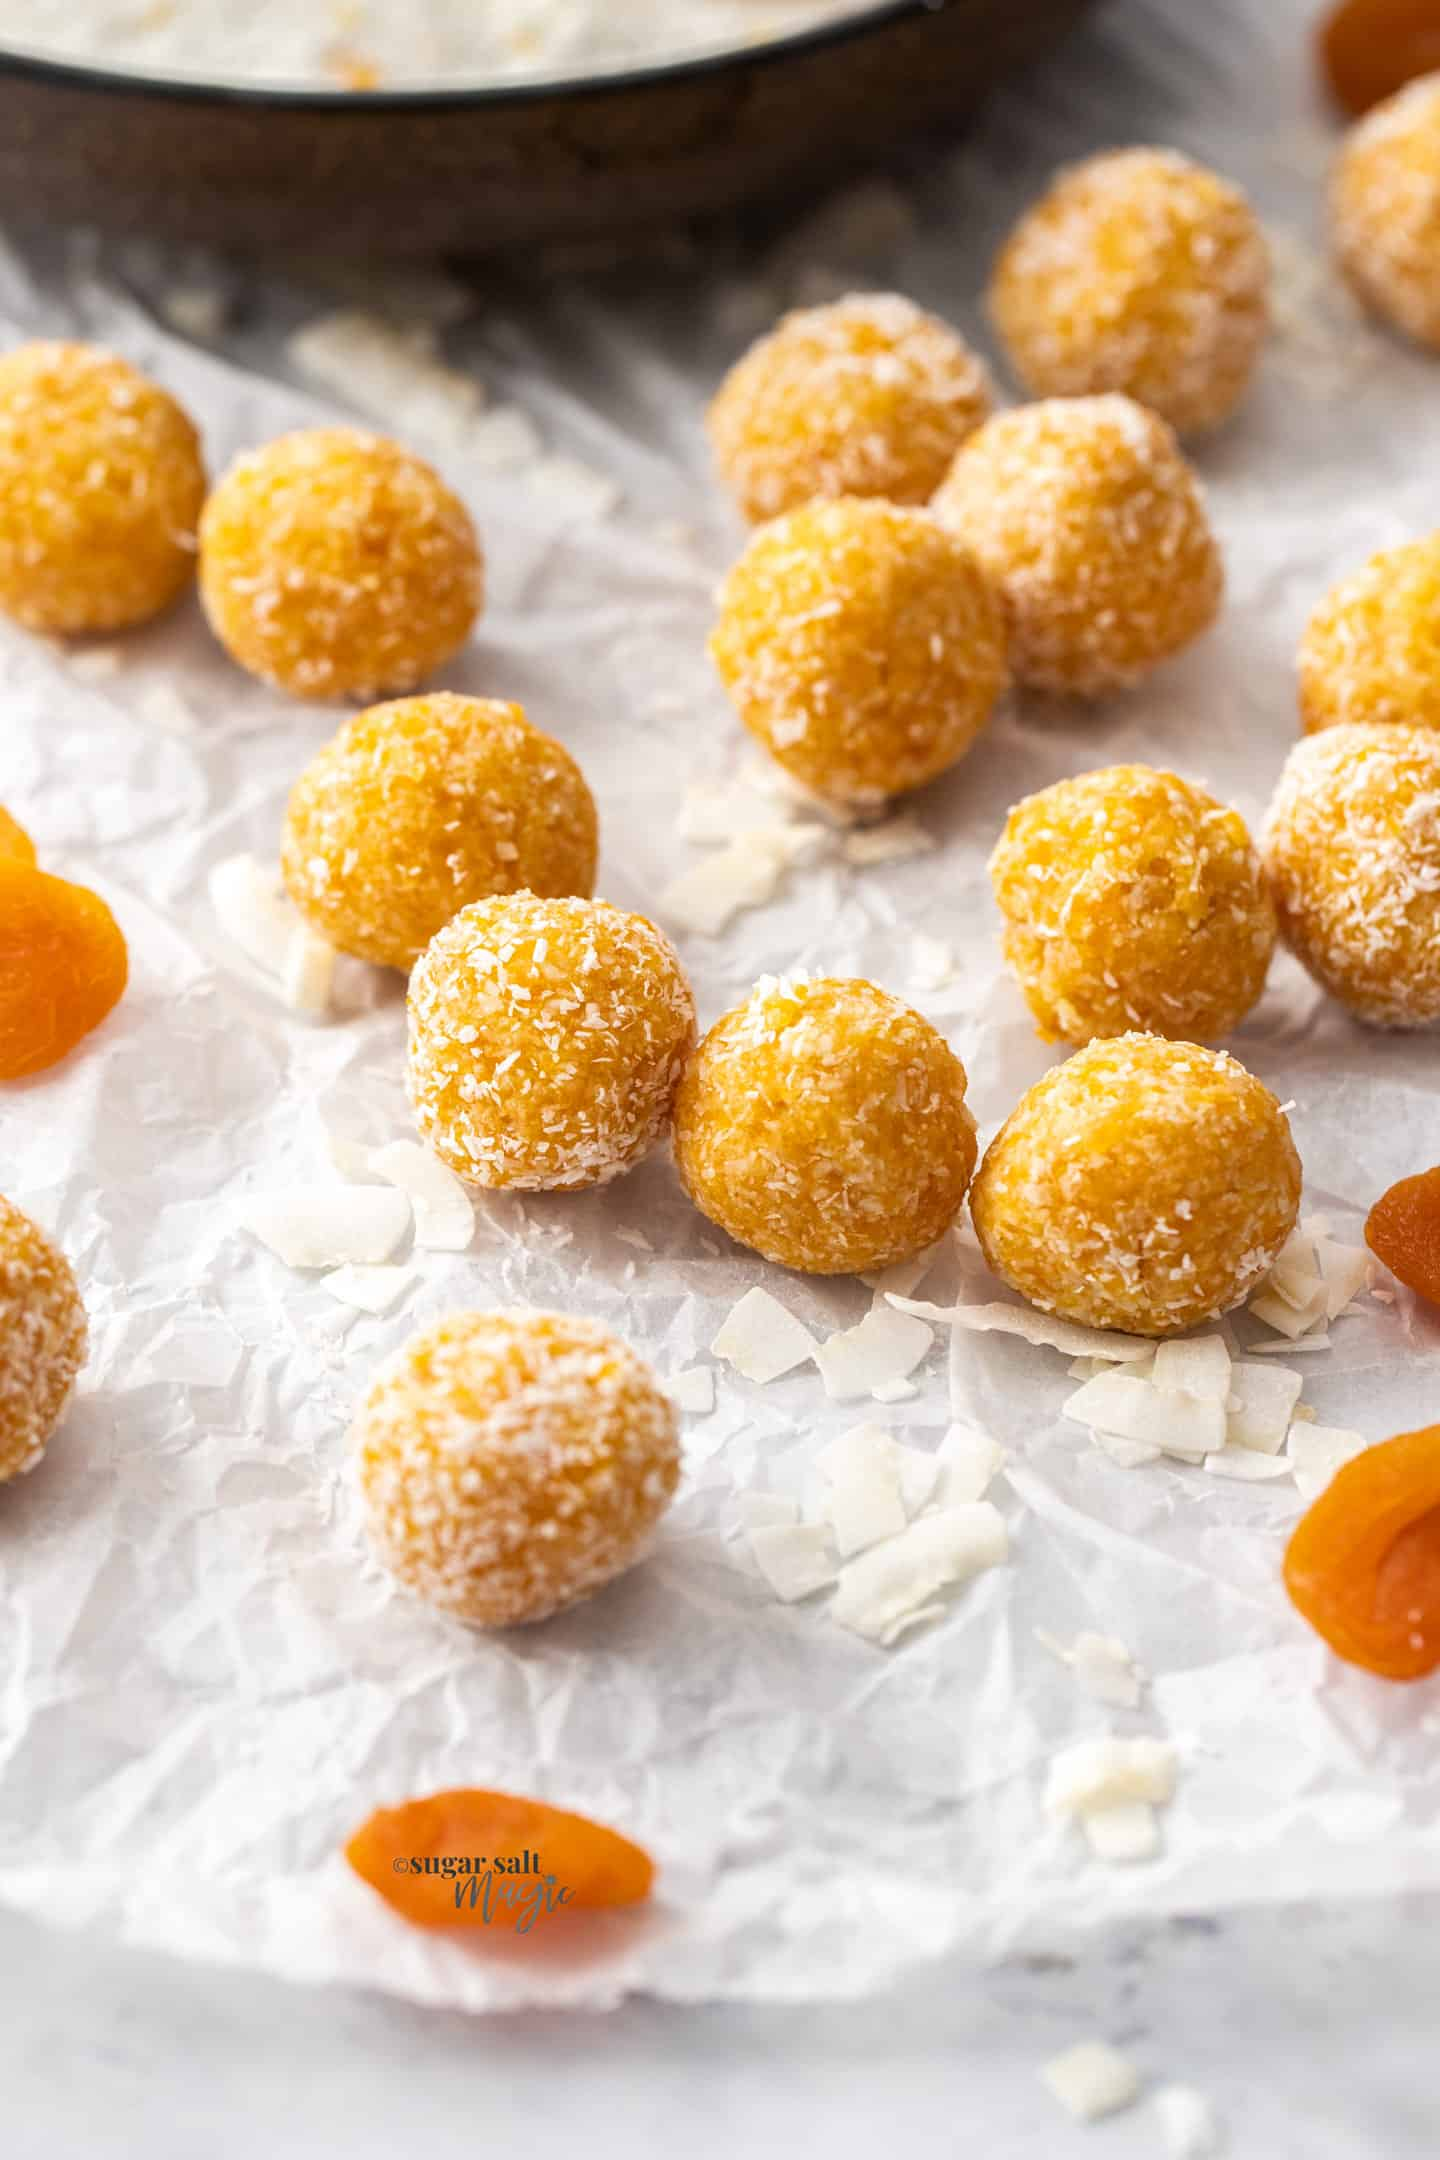 A batch of apricot bliss balls on a sheet of baking paper.